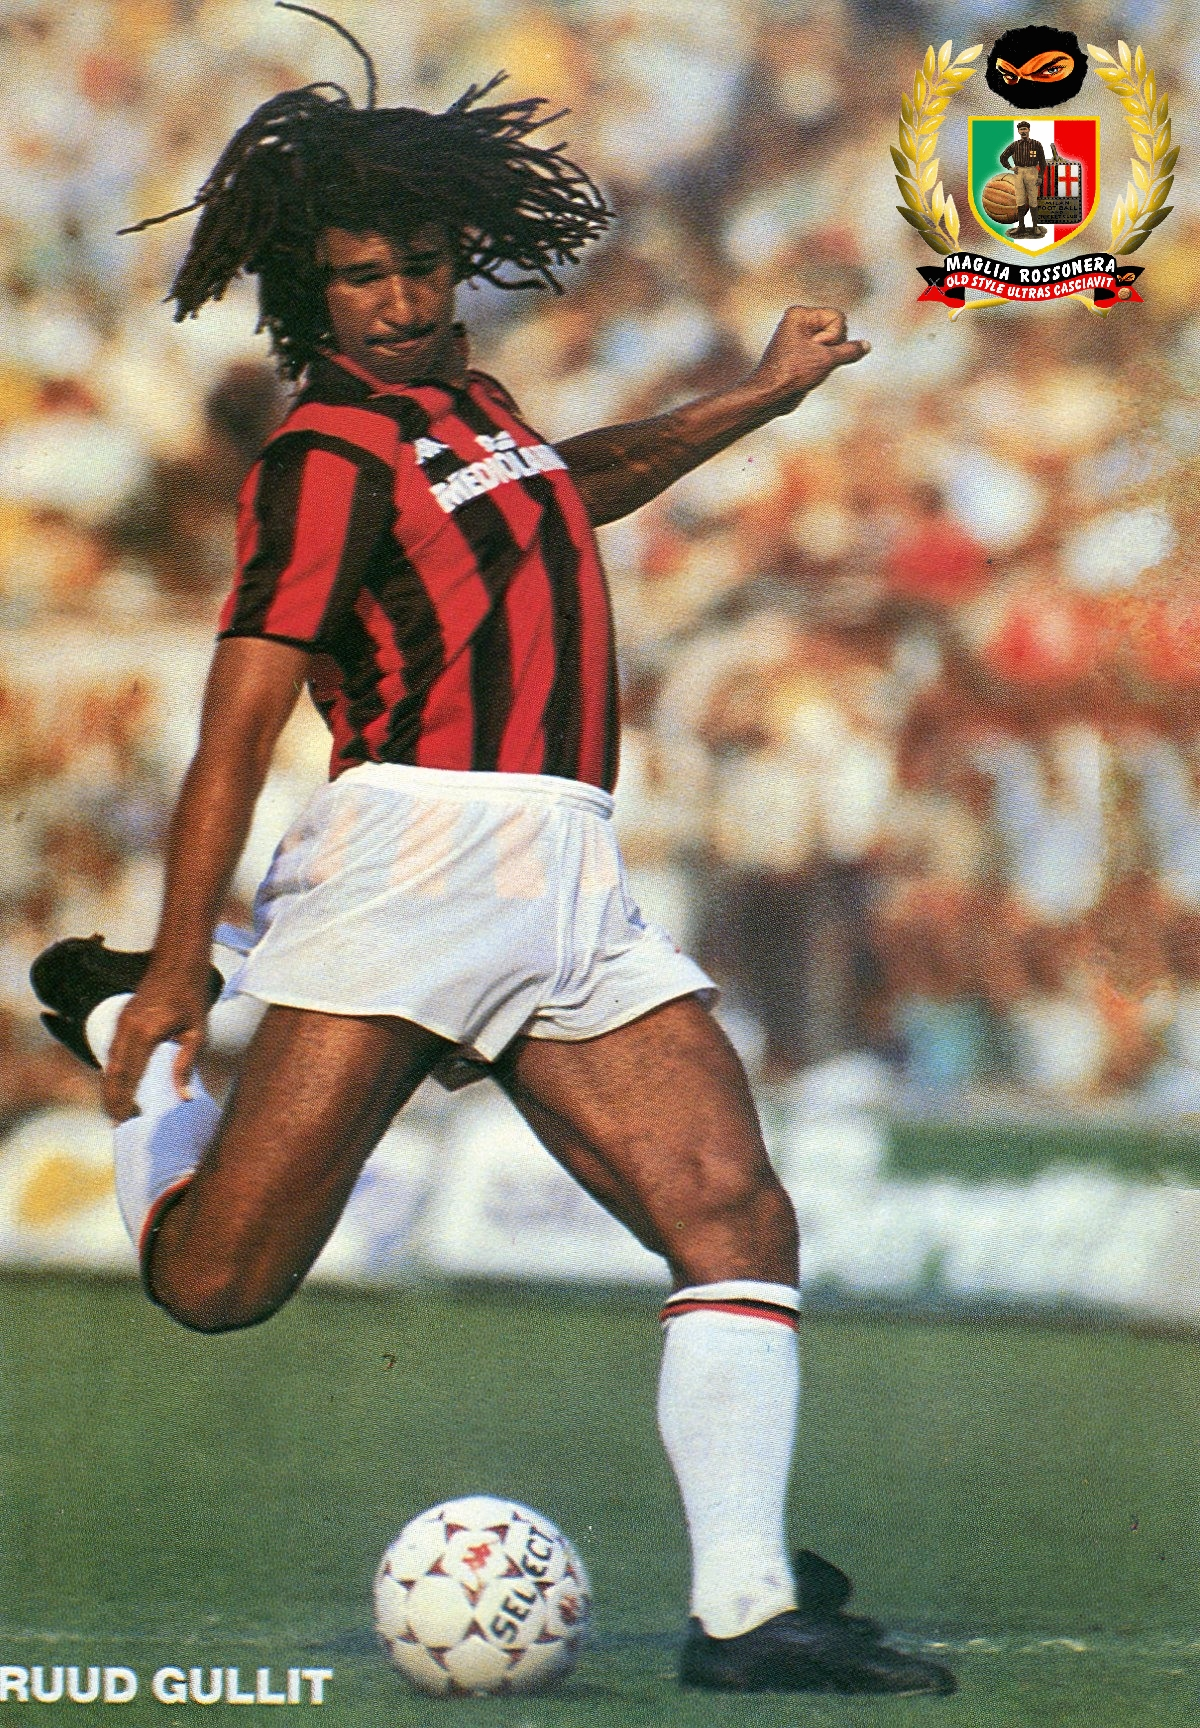 Ruud Gullit Wallpaper 1200x1728